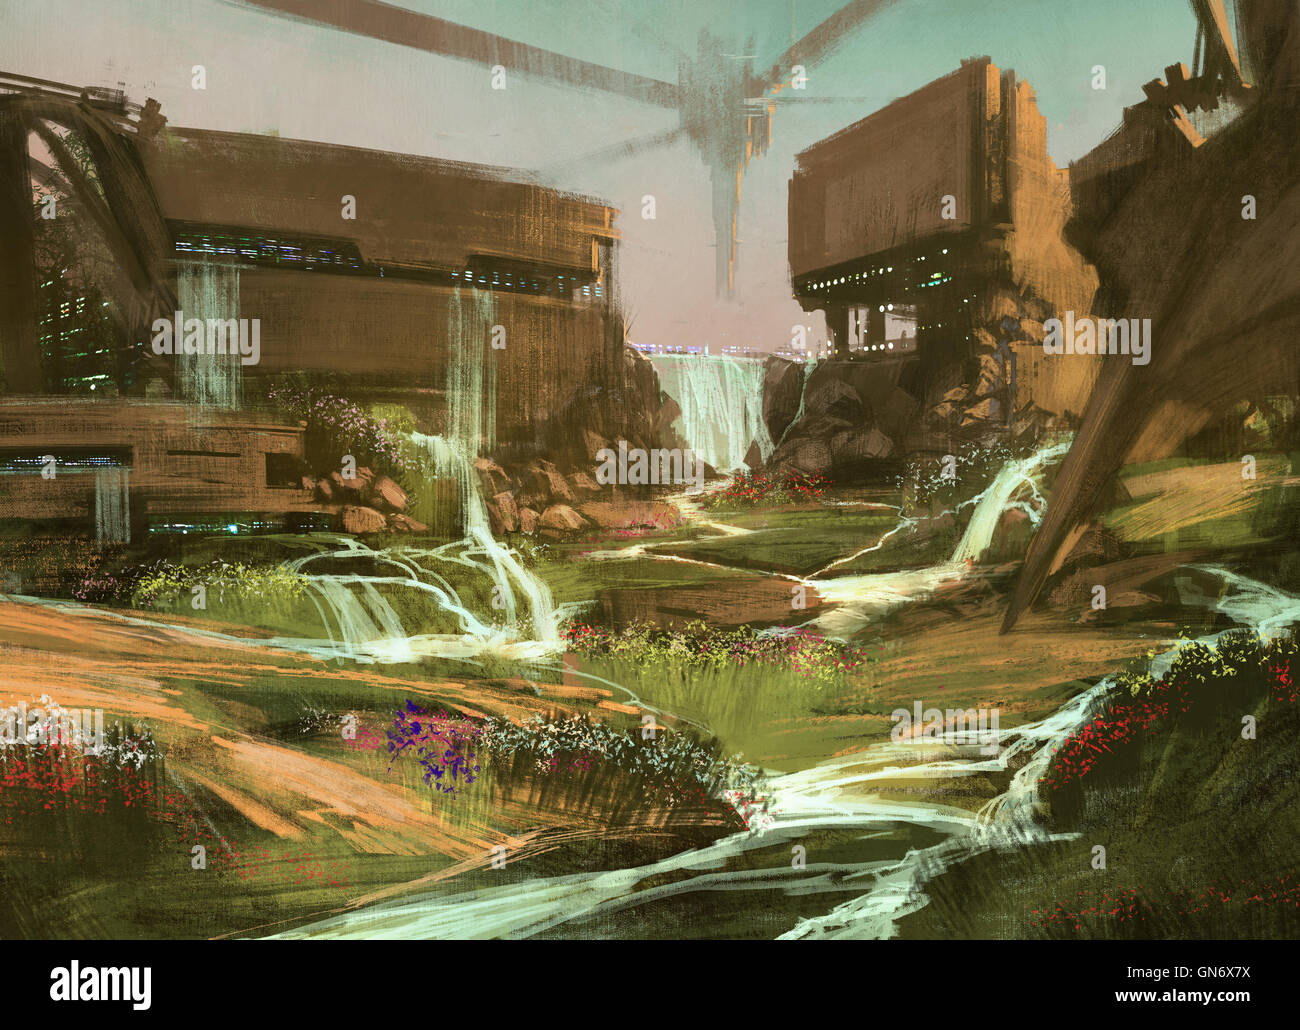 landscape with sci-fi buildings,illustration,digital painting - Stock Image